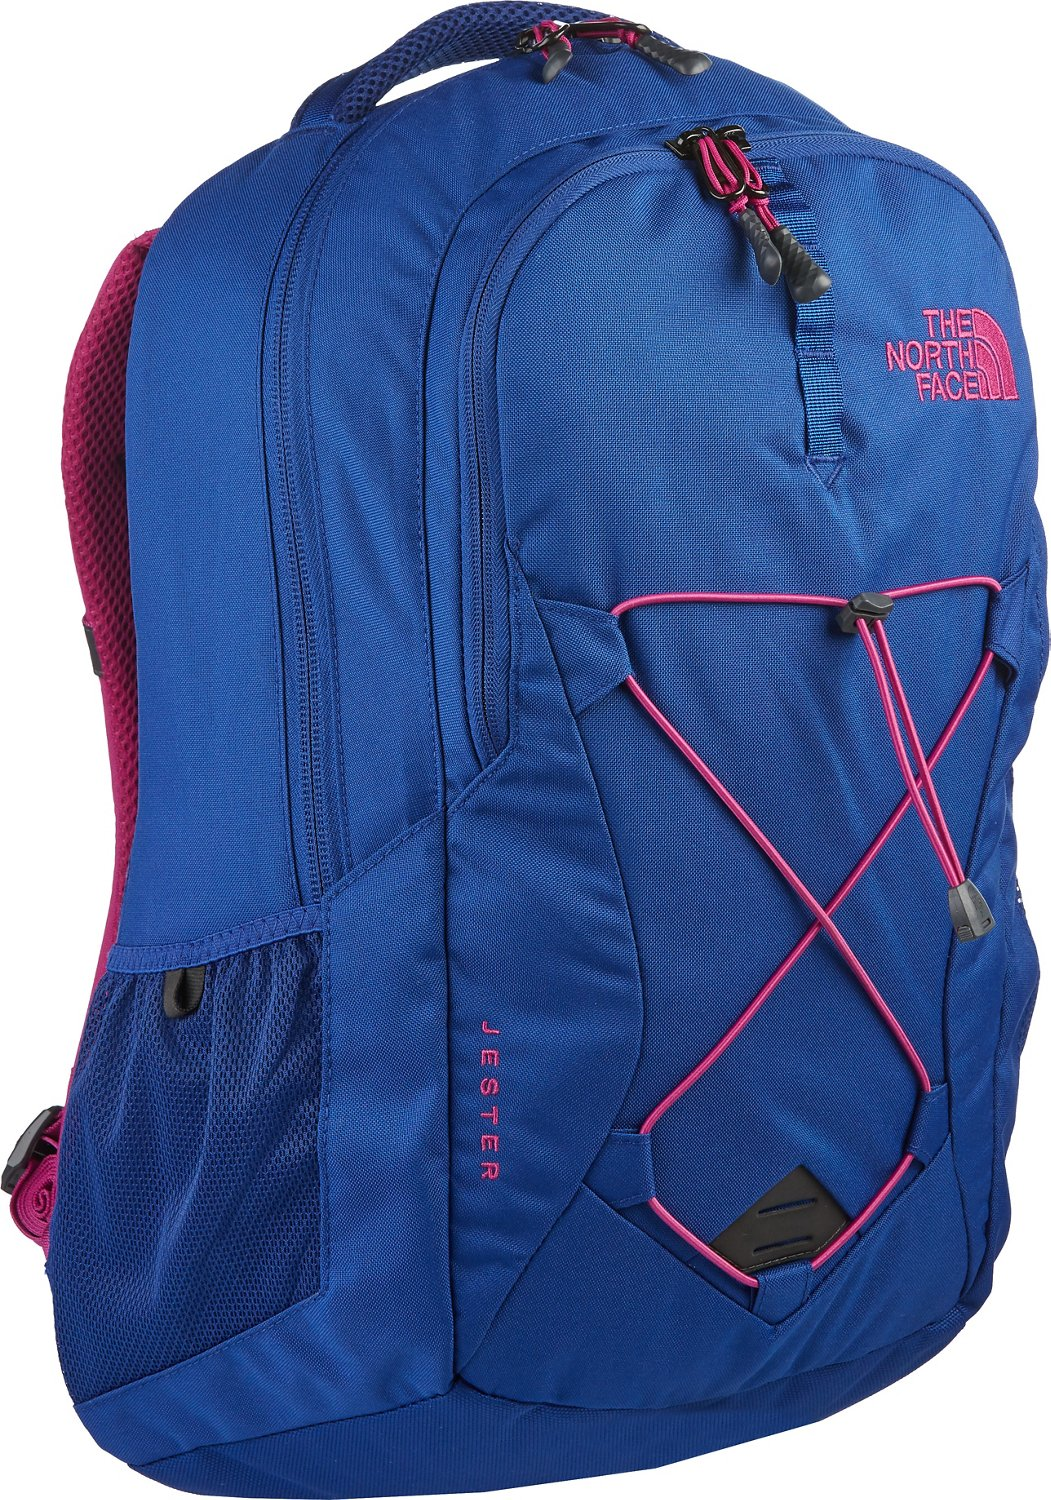 Display product reviews for The North Face Jester Backpack 5f728343a3ece